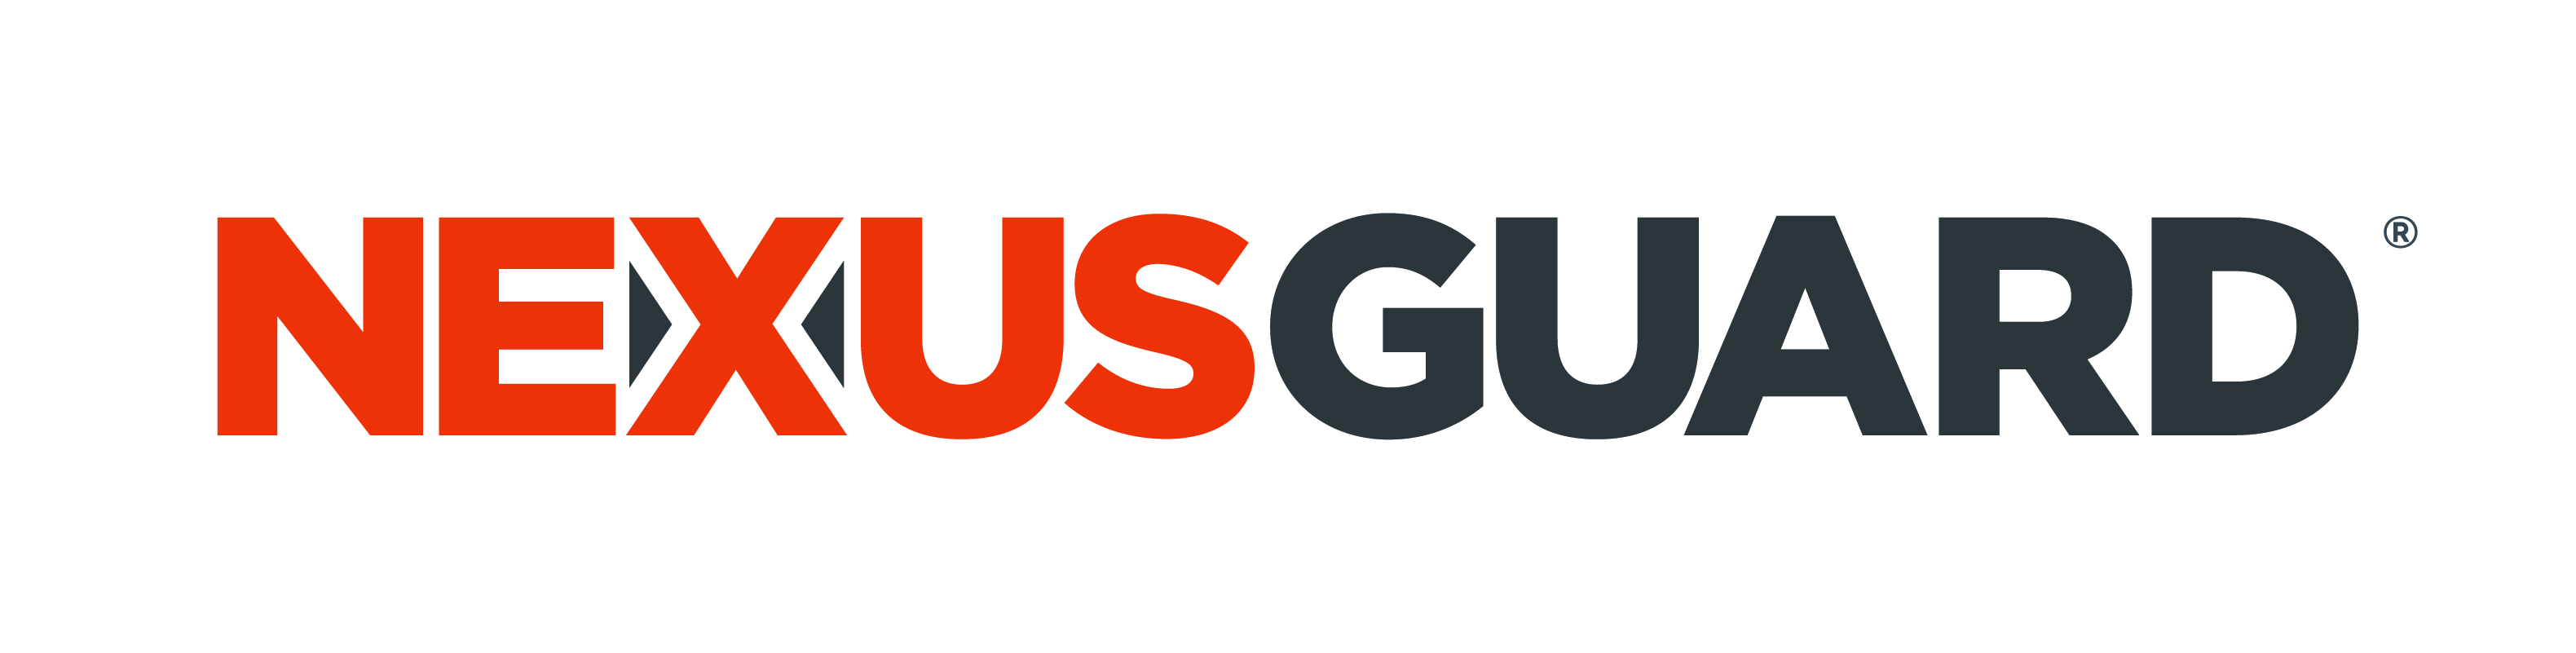 Nexusguard wins customer service excellence award for fifth consecutive year